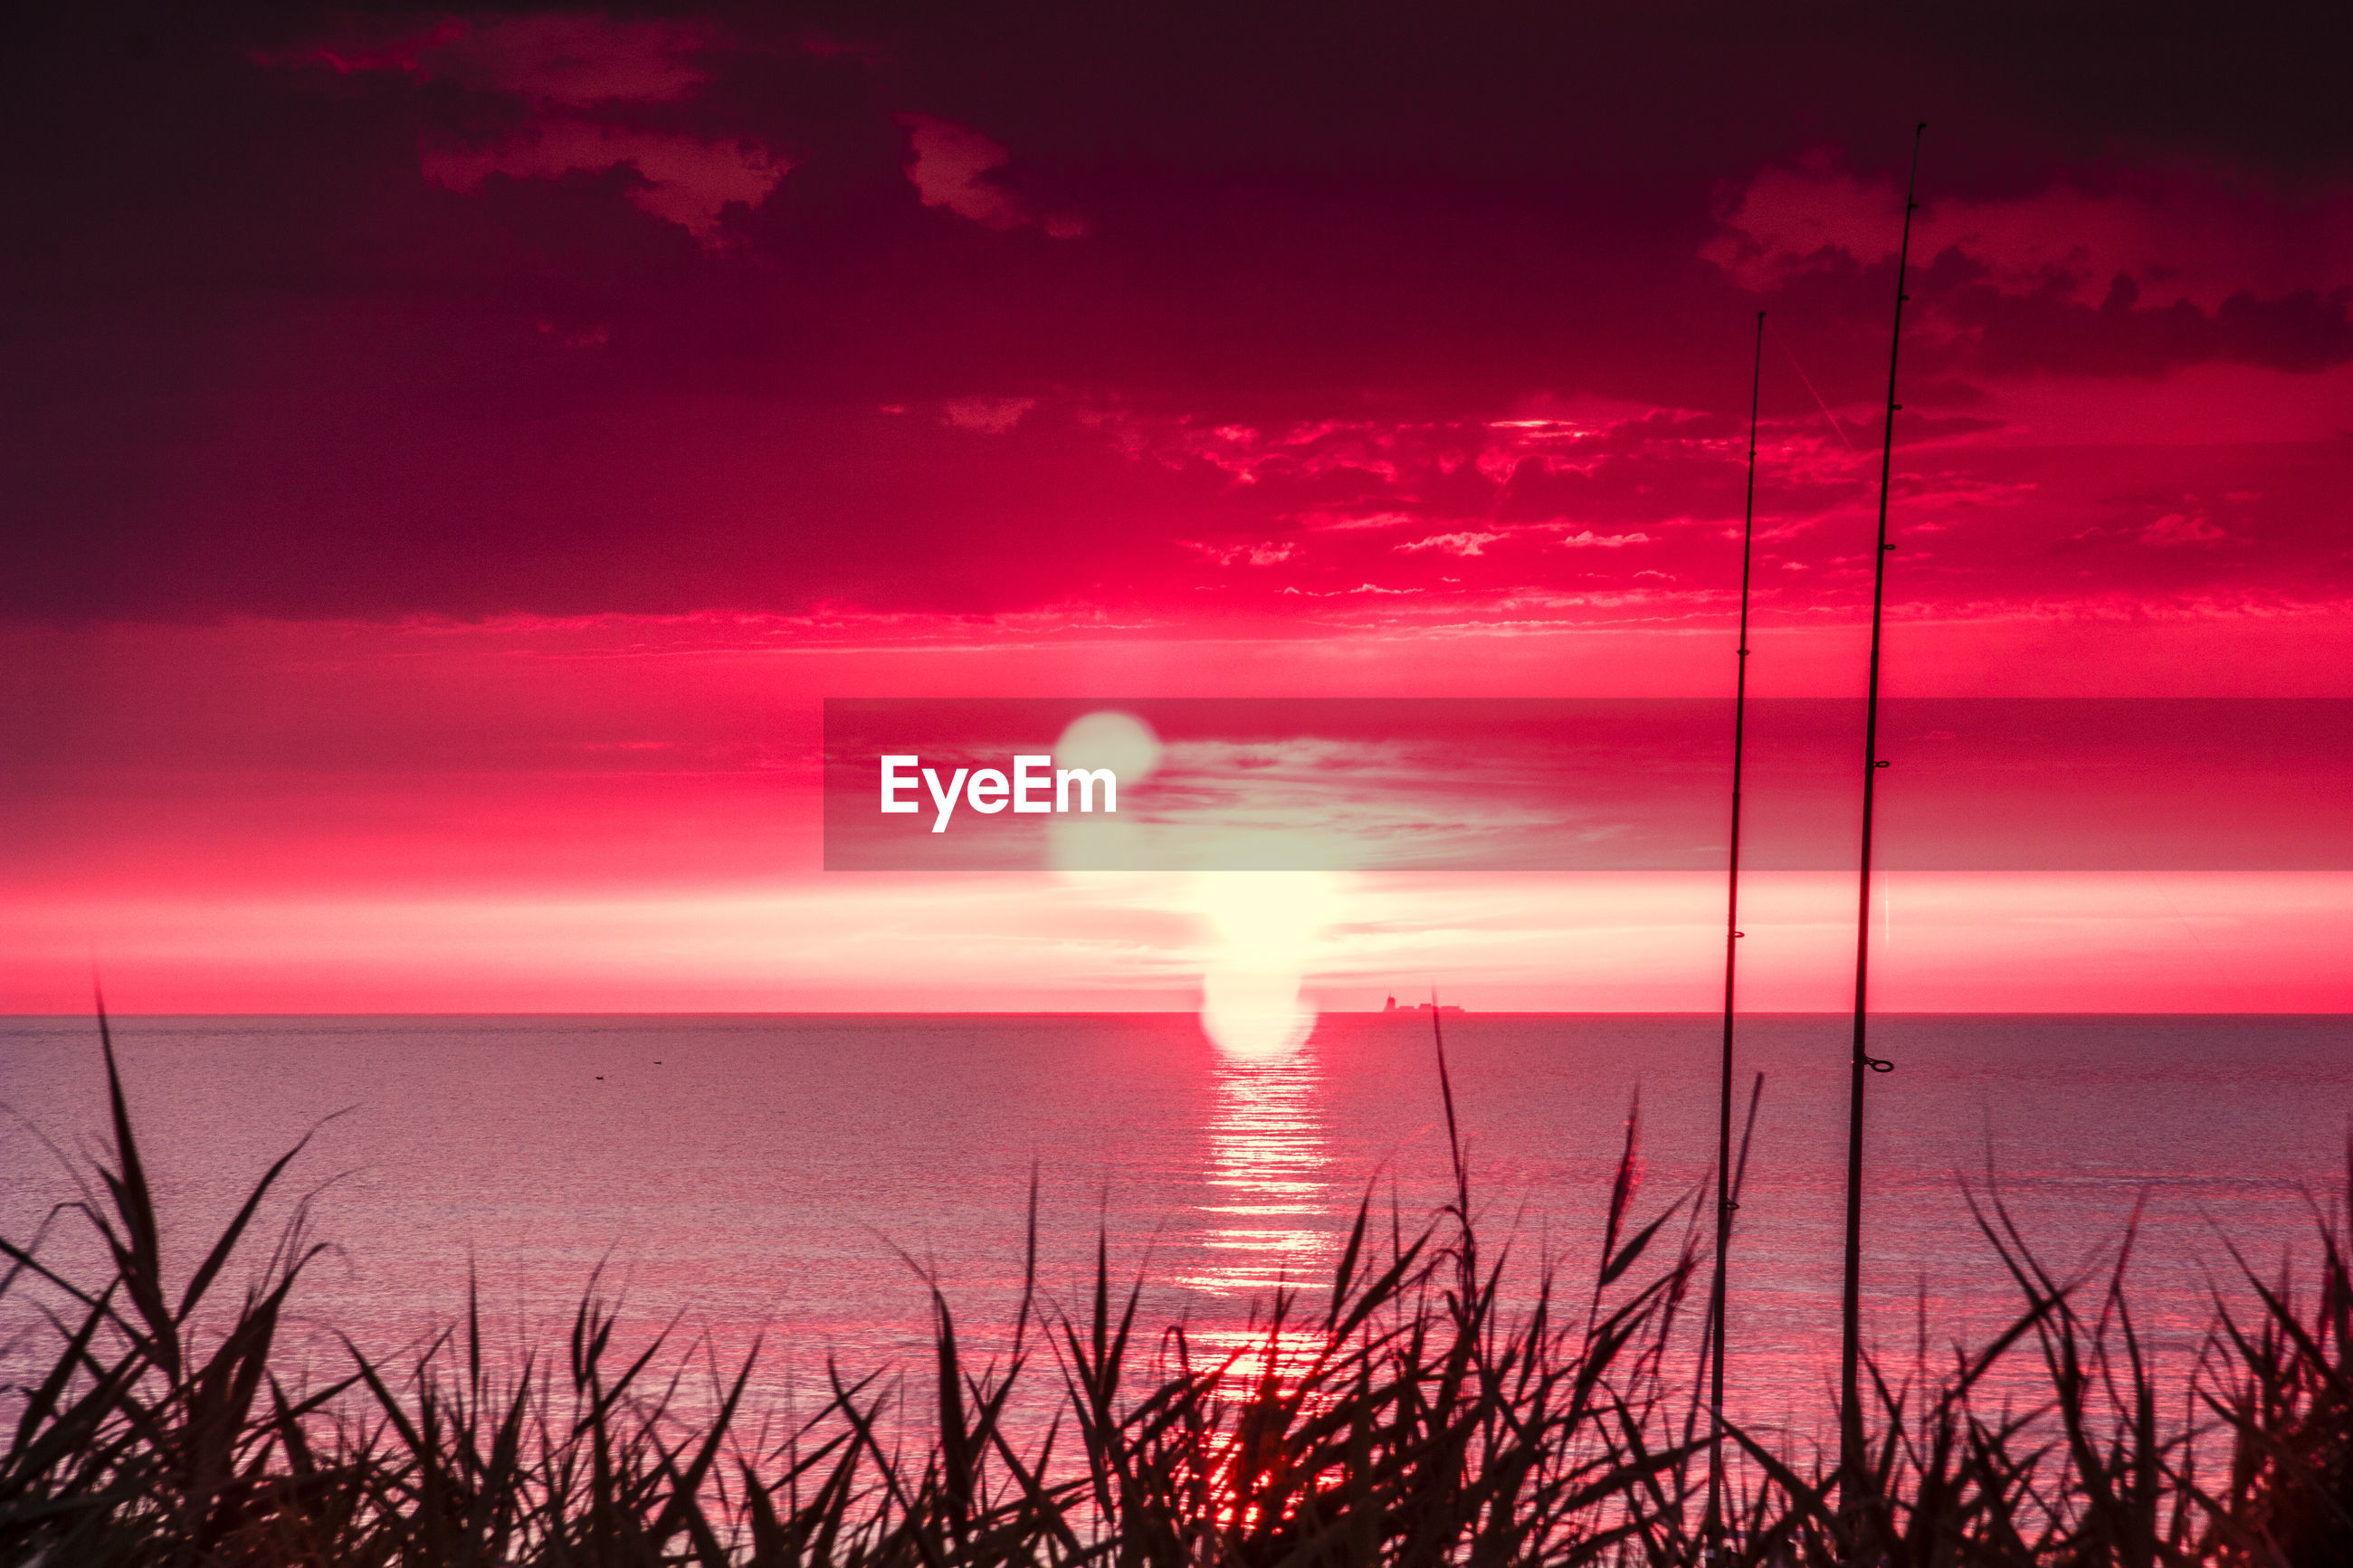 sea, sunset, water, sun, nature, beauty in nature, scenics, tranquility, tranquil scene, horizon over water, sky, no people, sunlight, red, outdoors, silhouette, travel destinations, beach, day